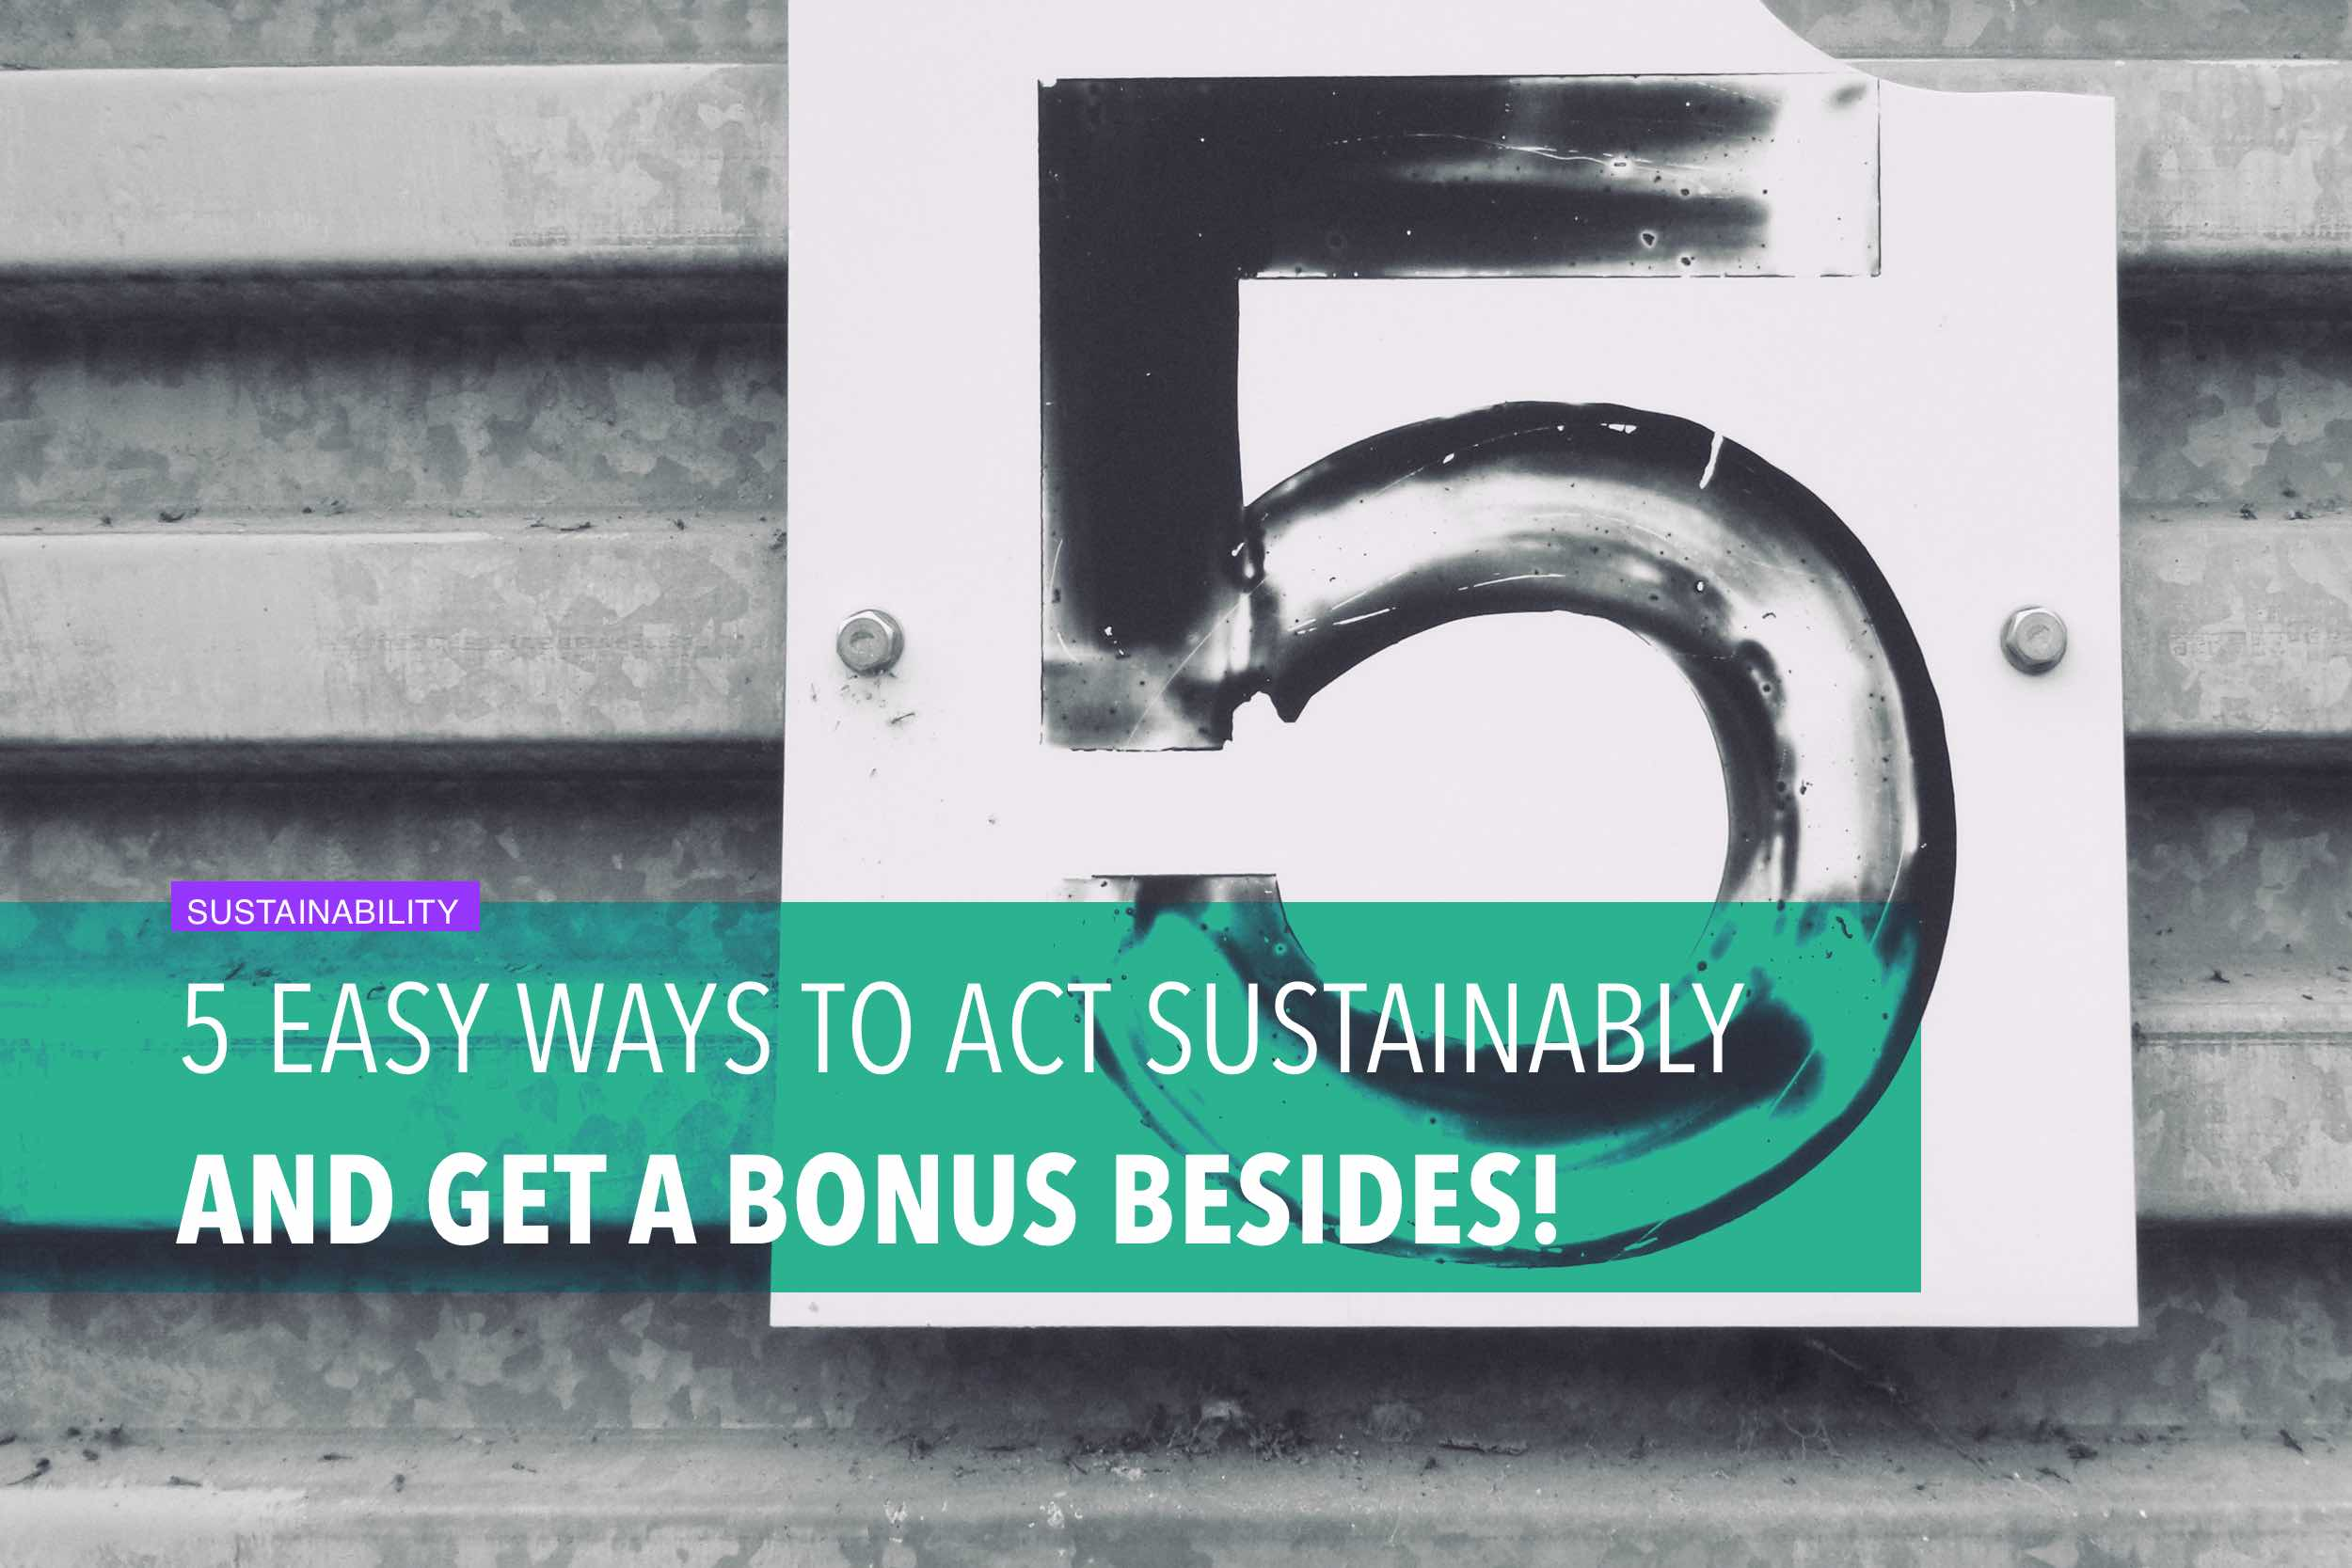 5 easy ways to act sustainably and get a bonus besides!